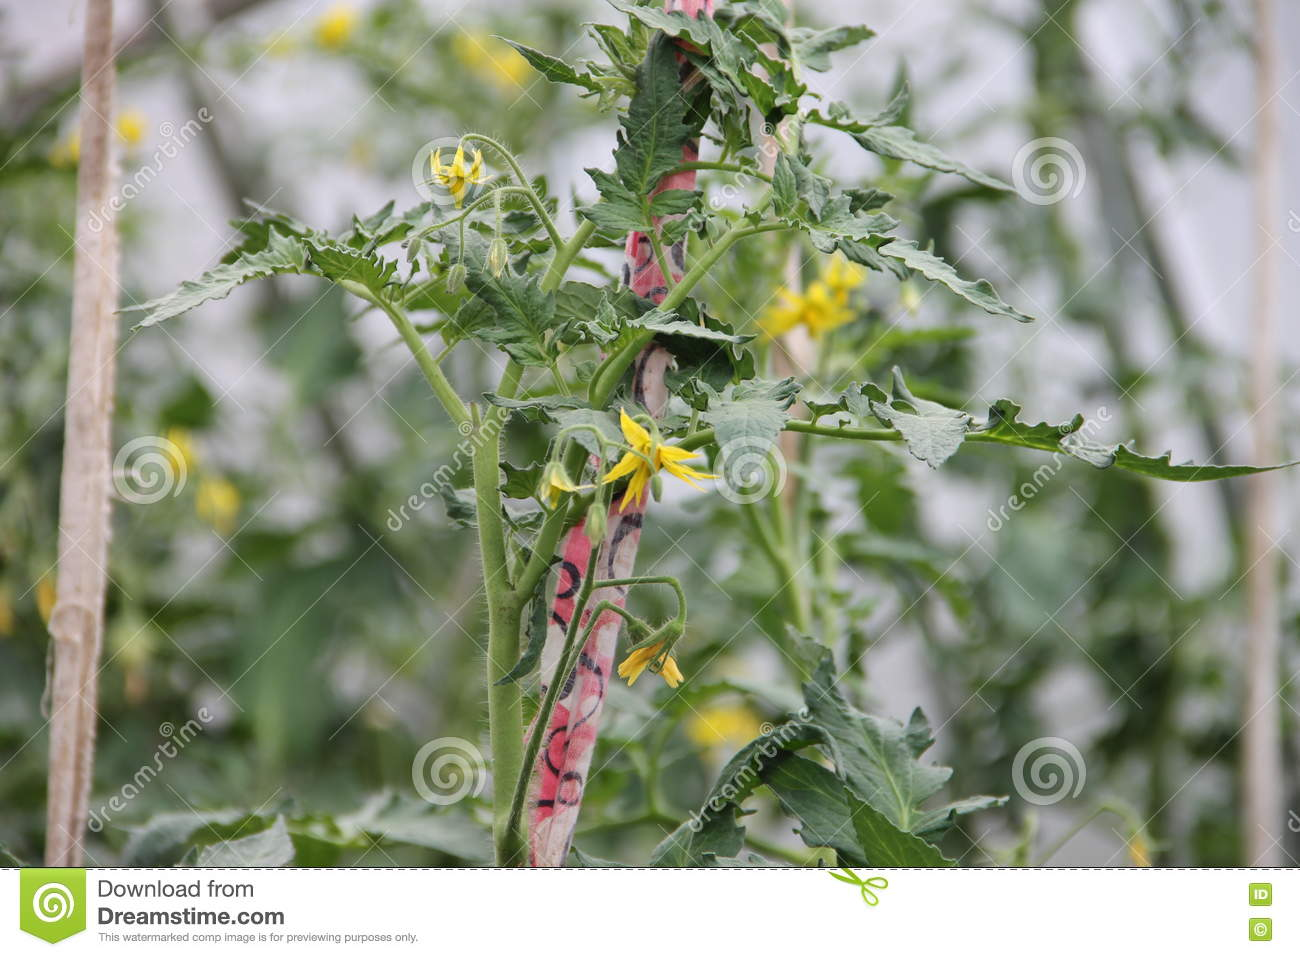 Yellow Flowers And Tomato Plants Growing In Greenhouse Indoors Stock